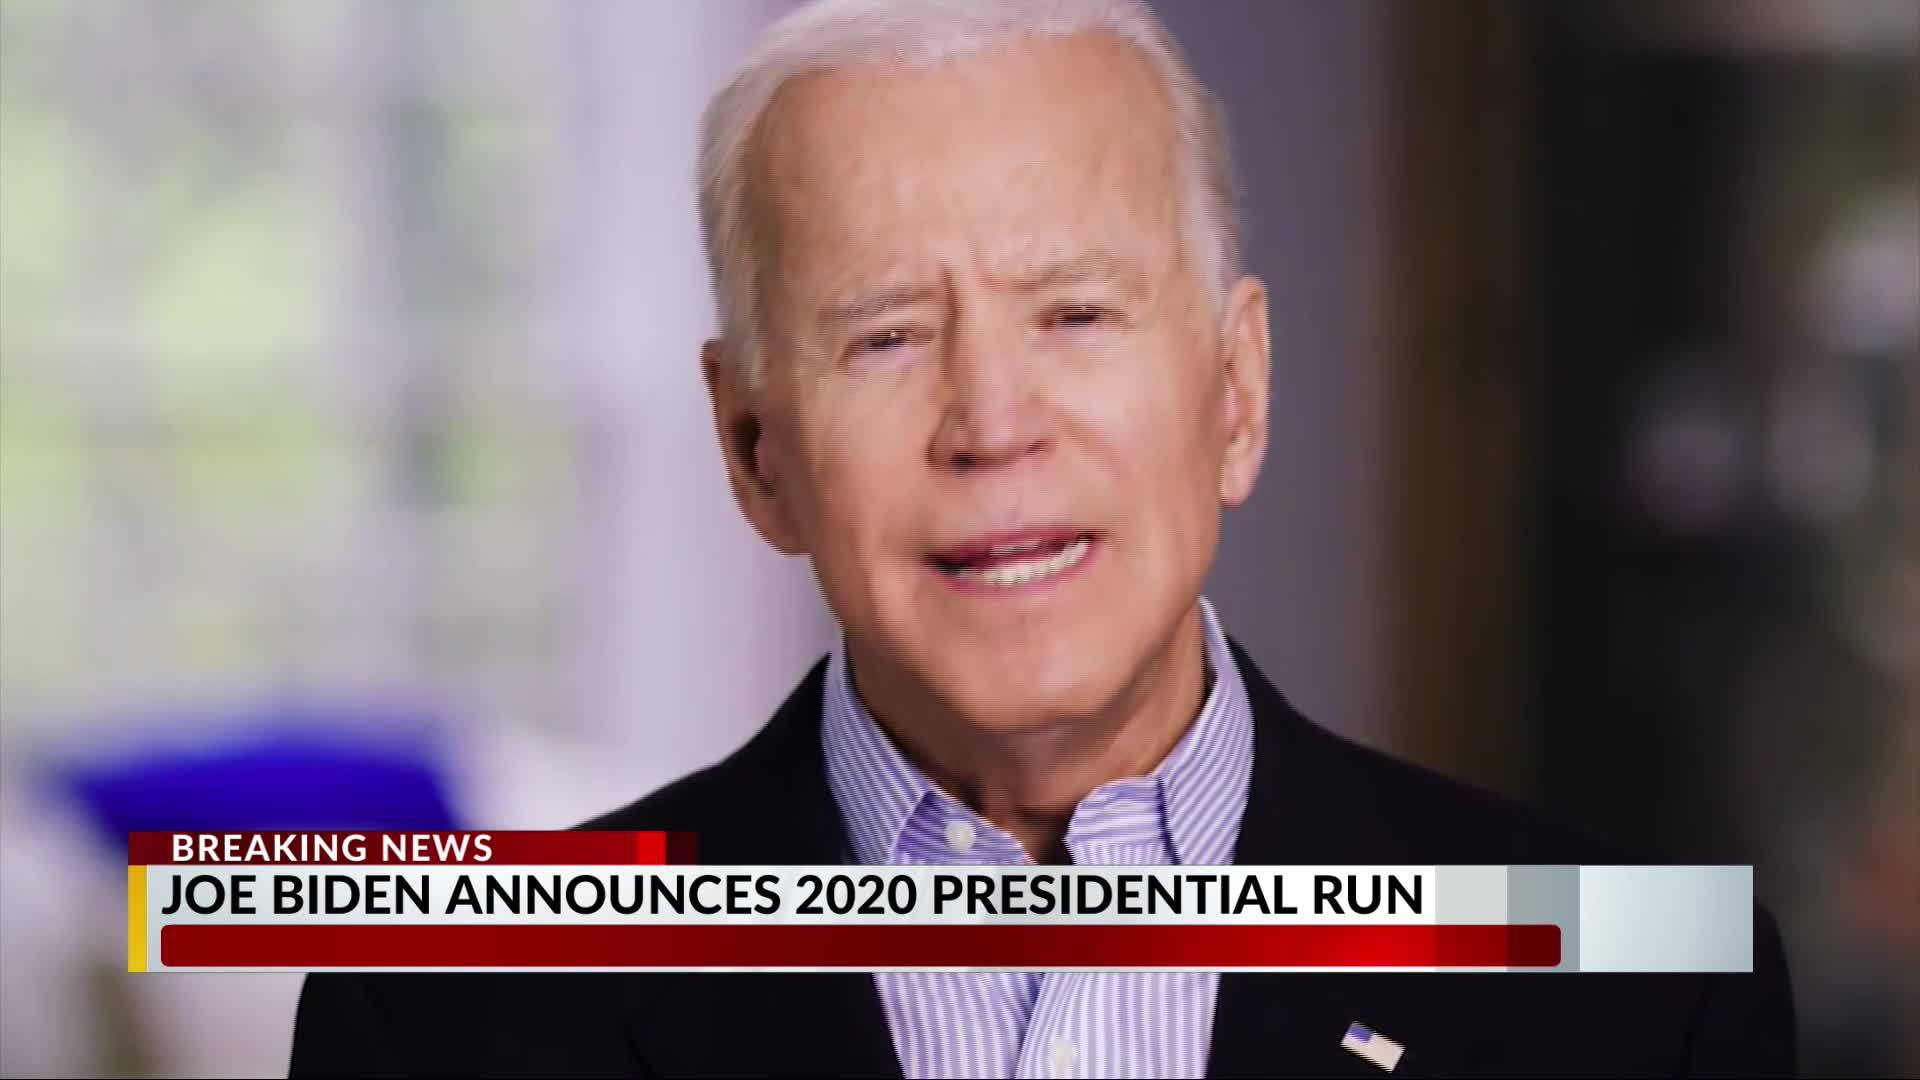 Joe_Biden_Announces_2020_Presidential_Ru_8_20190425104104